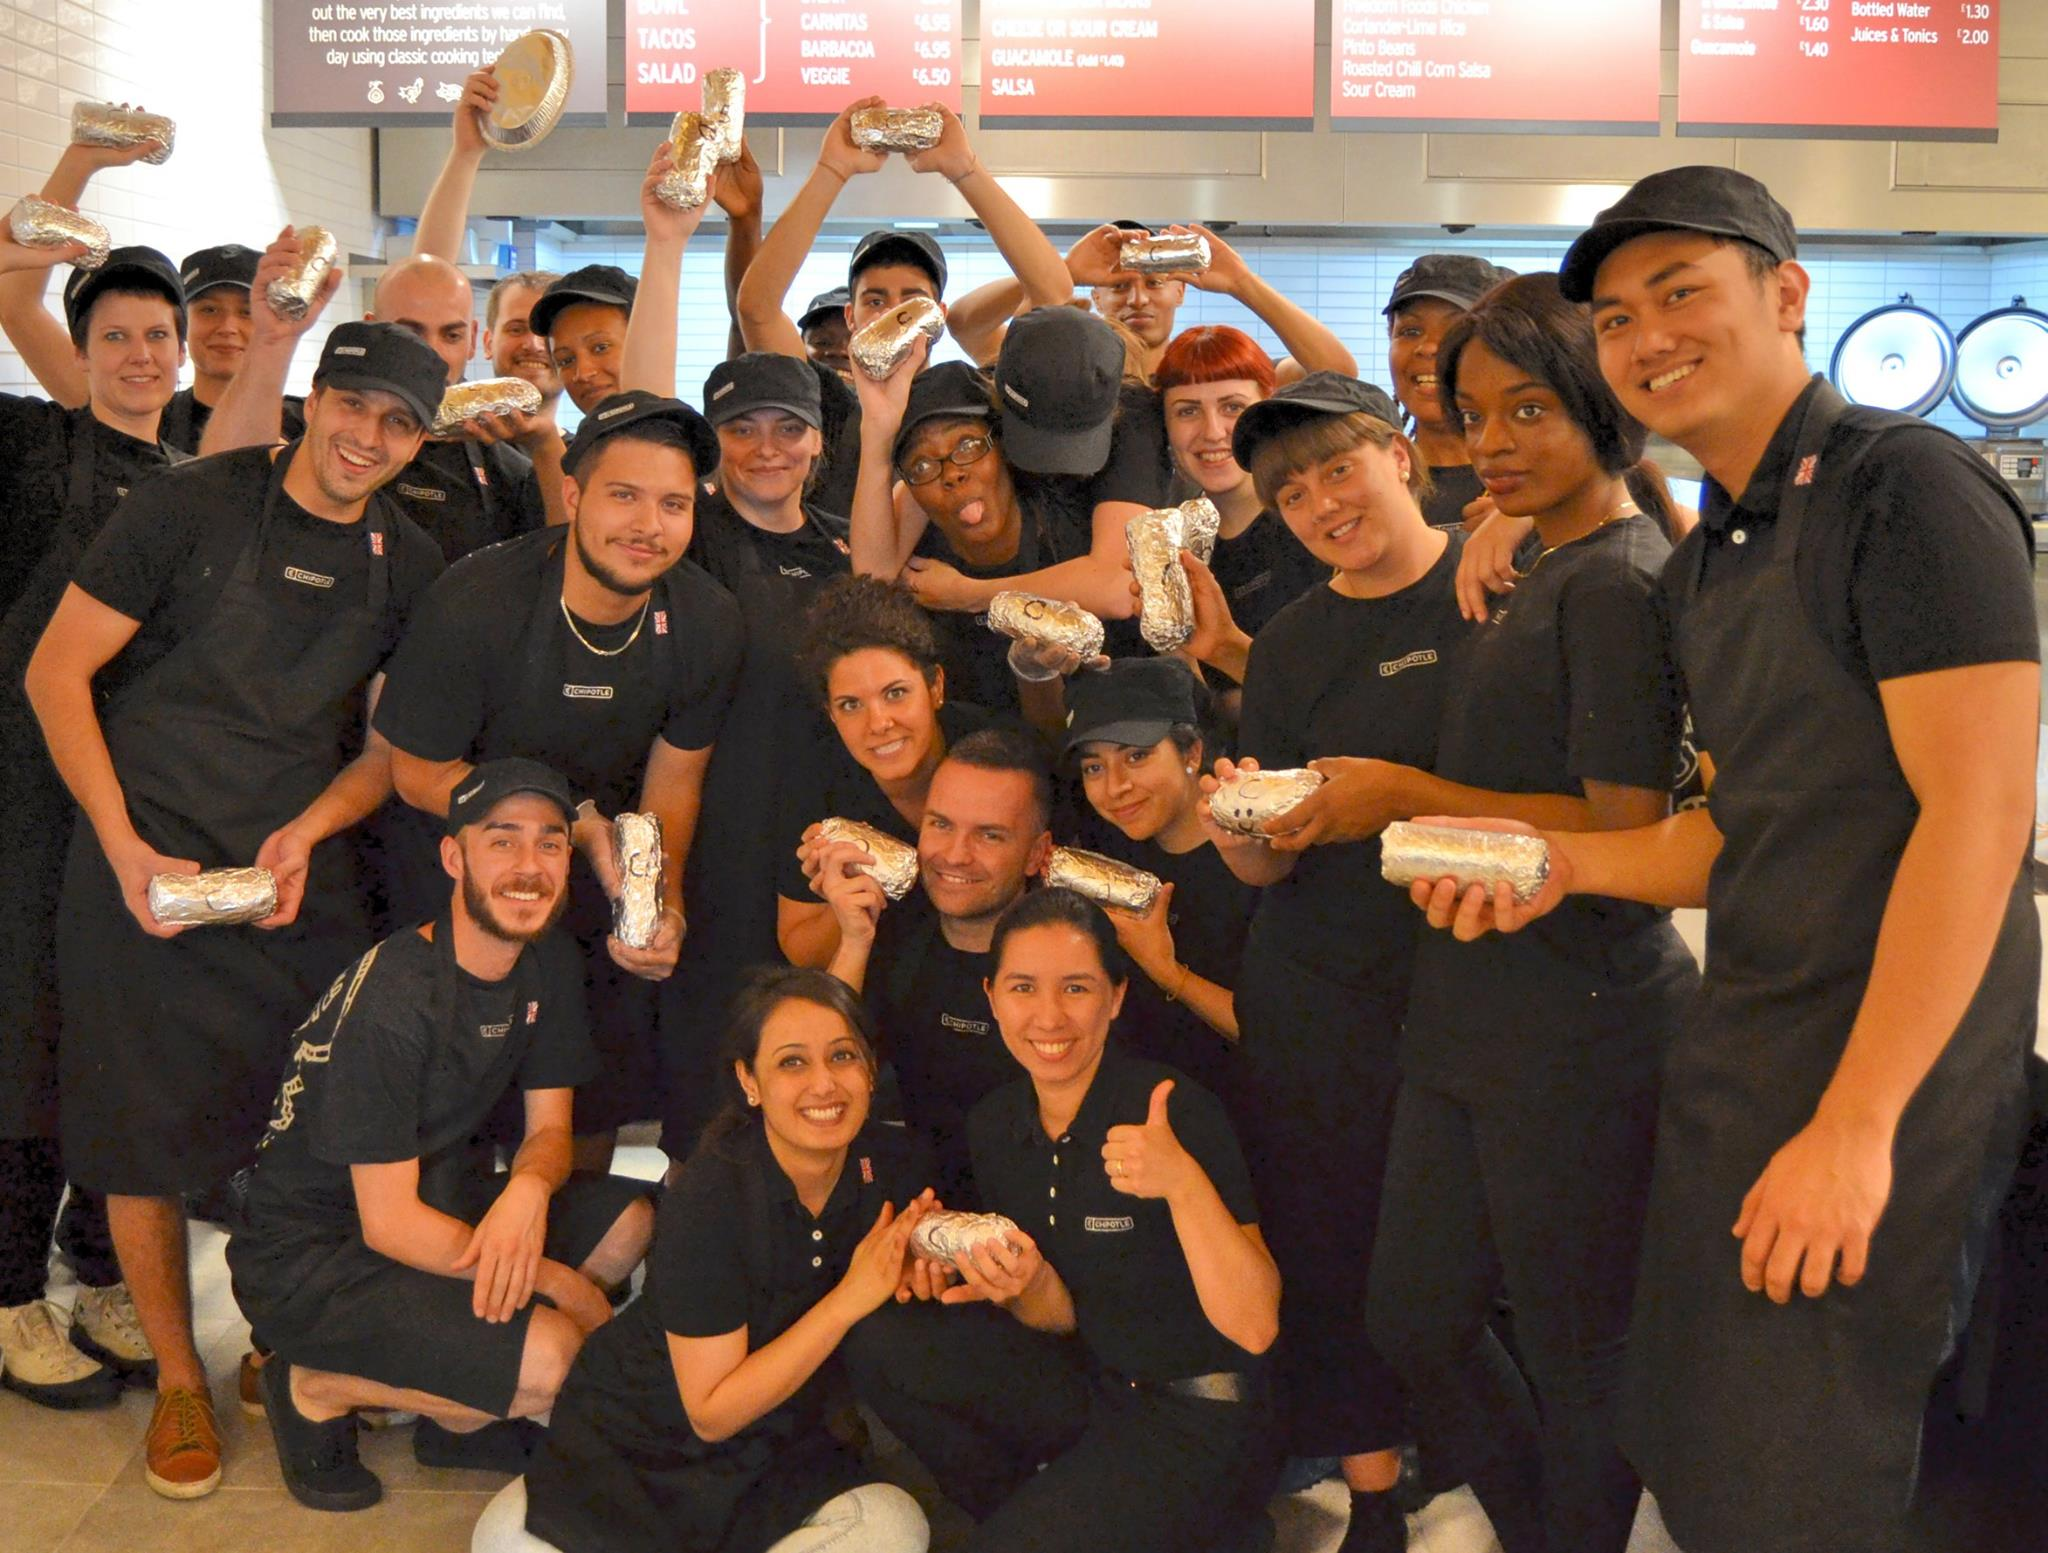 Chipotle Allegedly Threw 'Parties' Where Off-The-Clock Workers Cleaned For Free